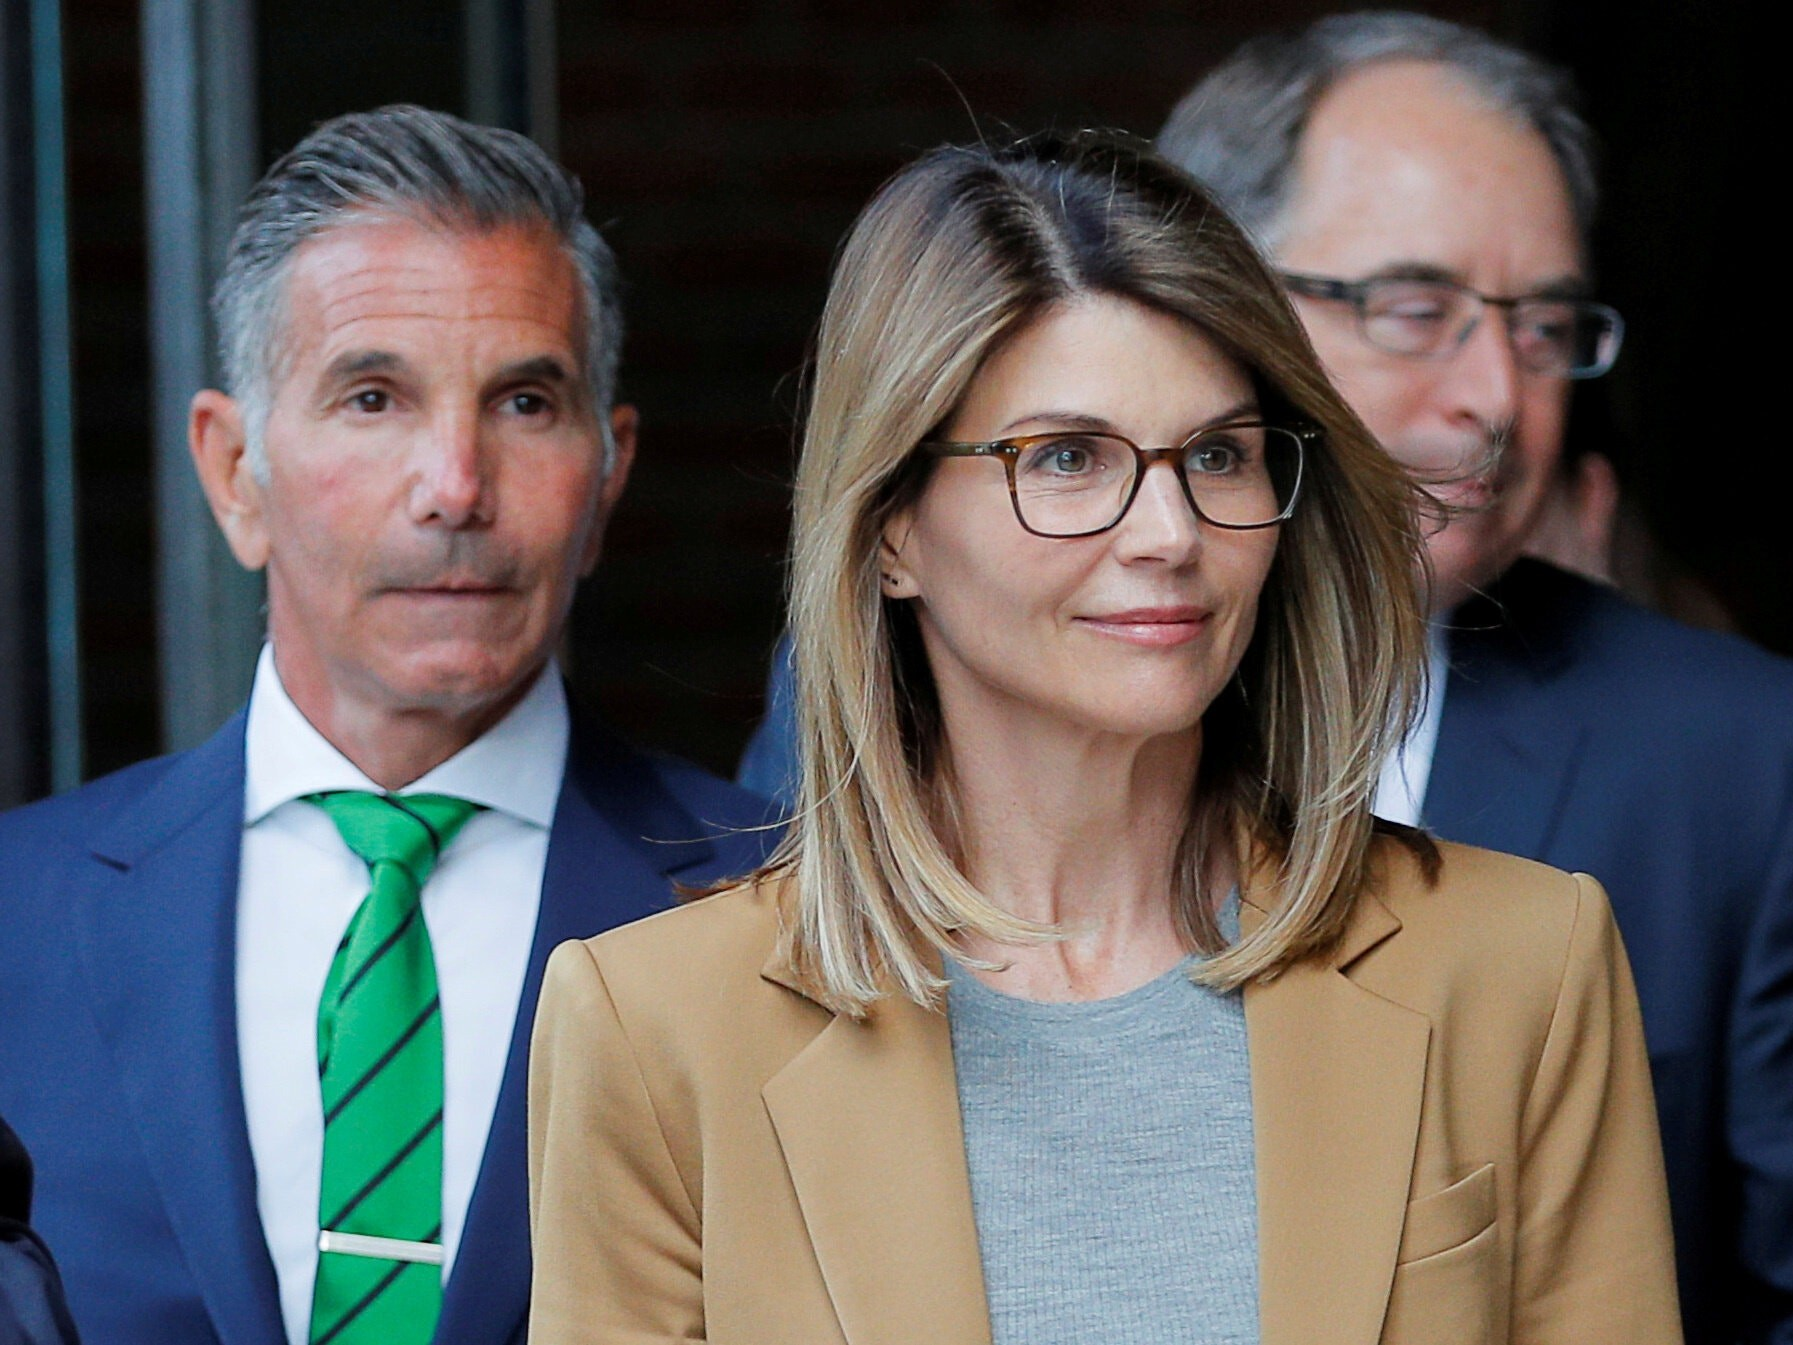 Lori Loughlin and Mossimo Giannulli Get Prison in College Admissions Case